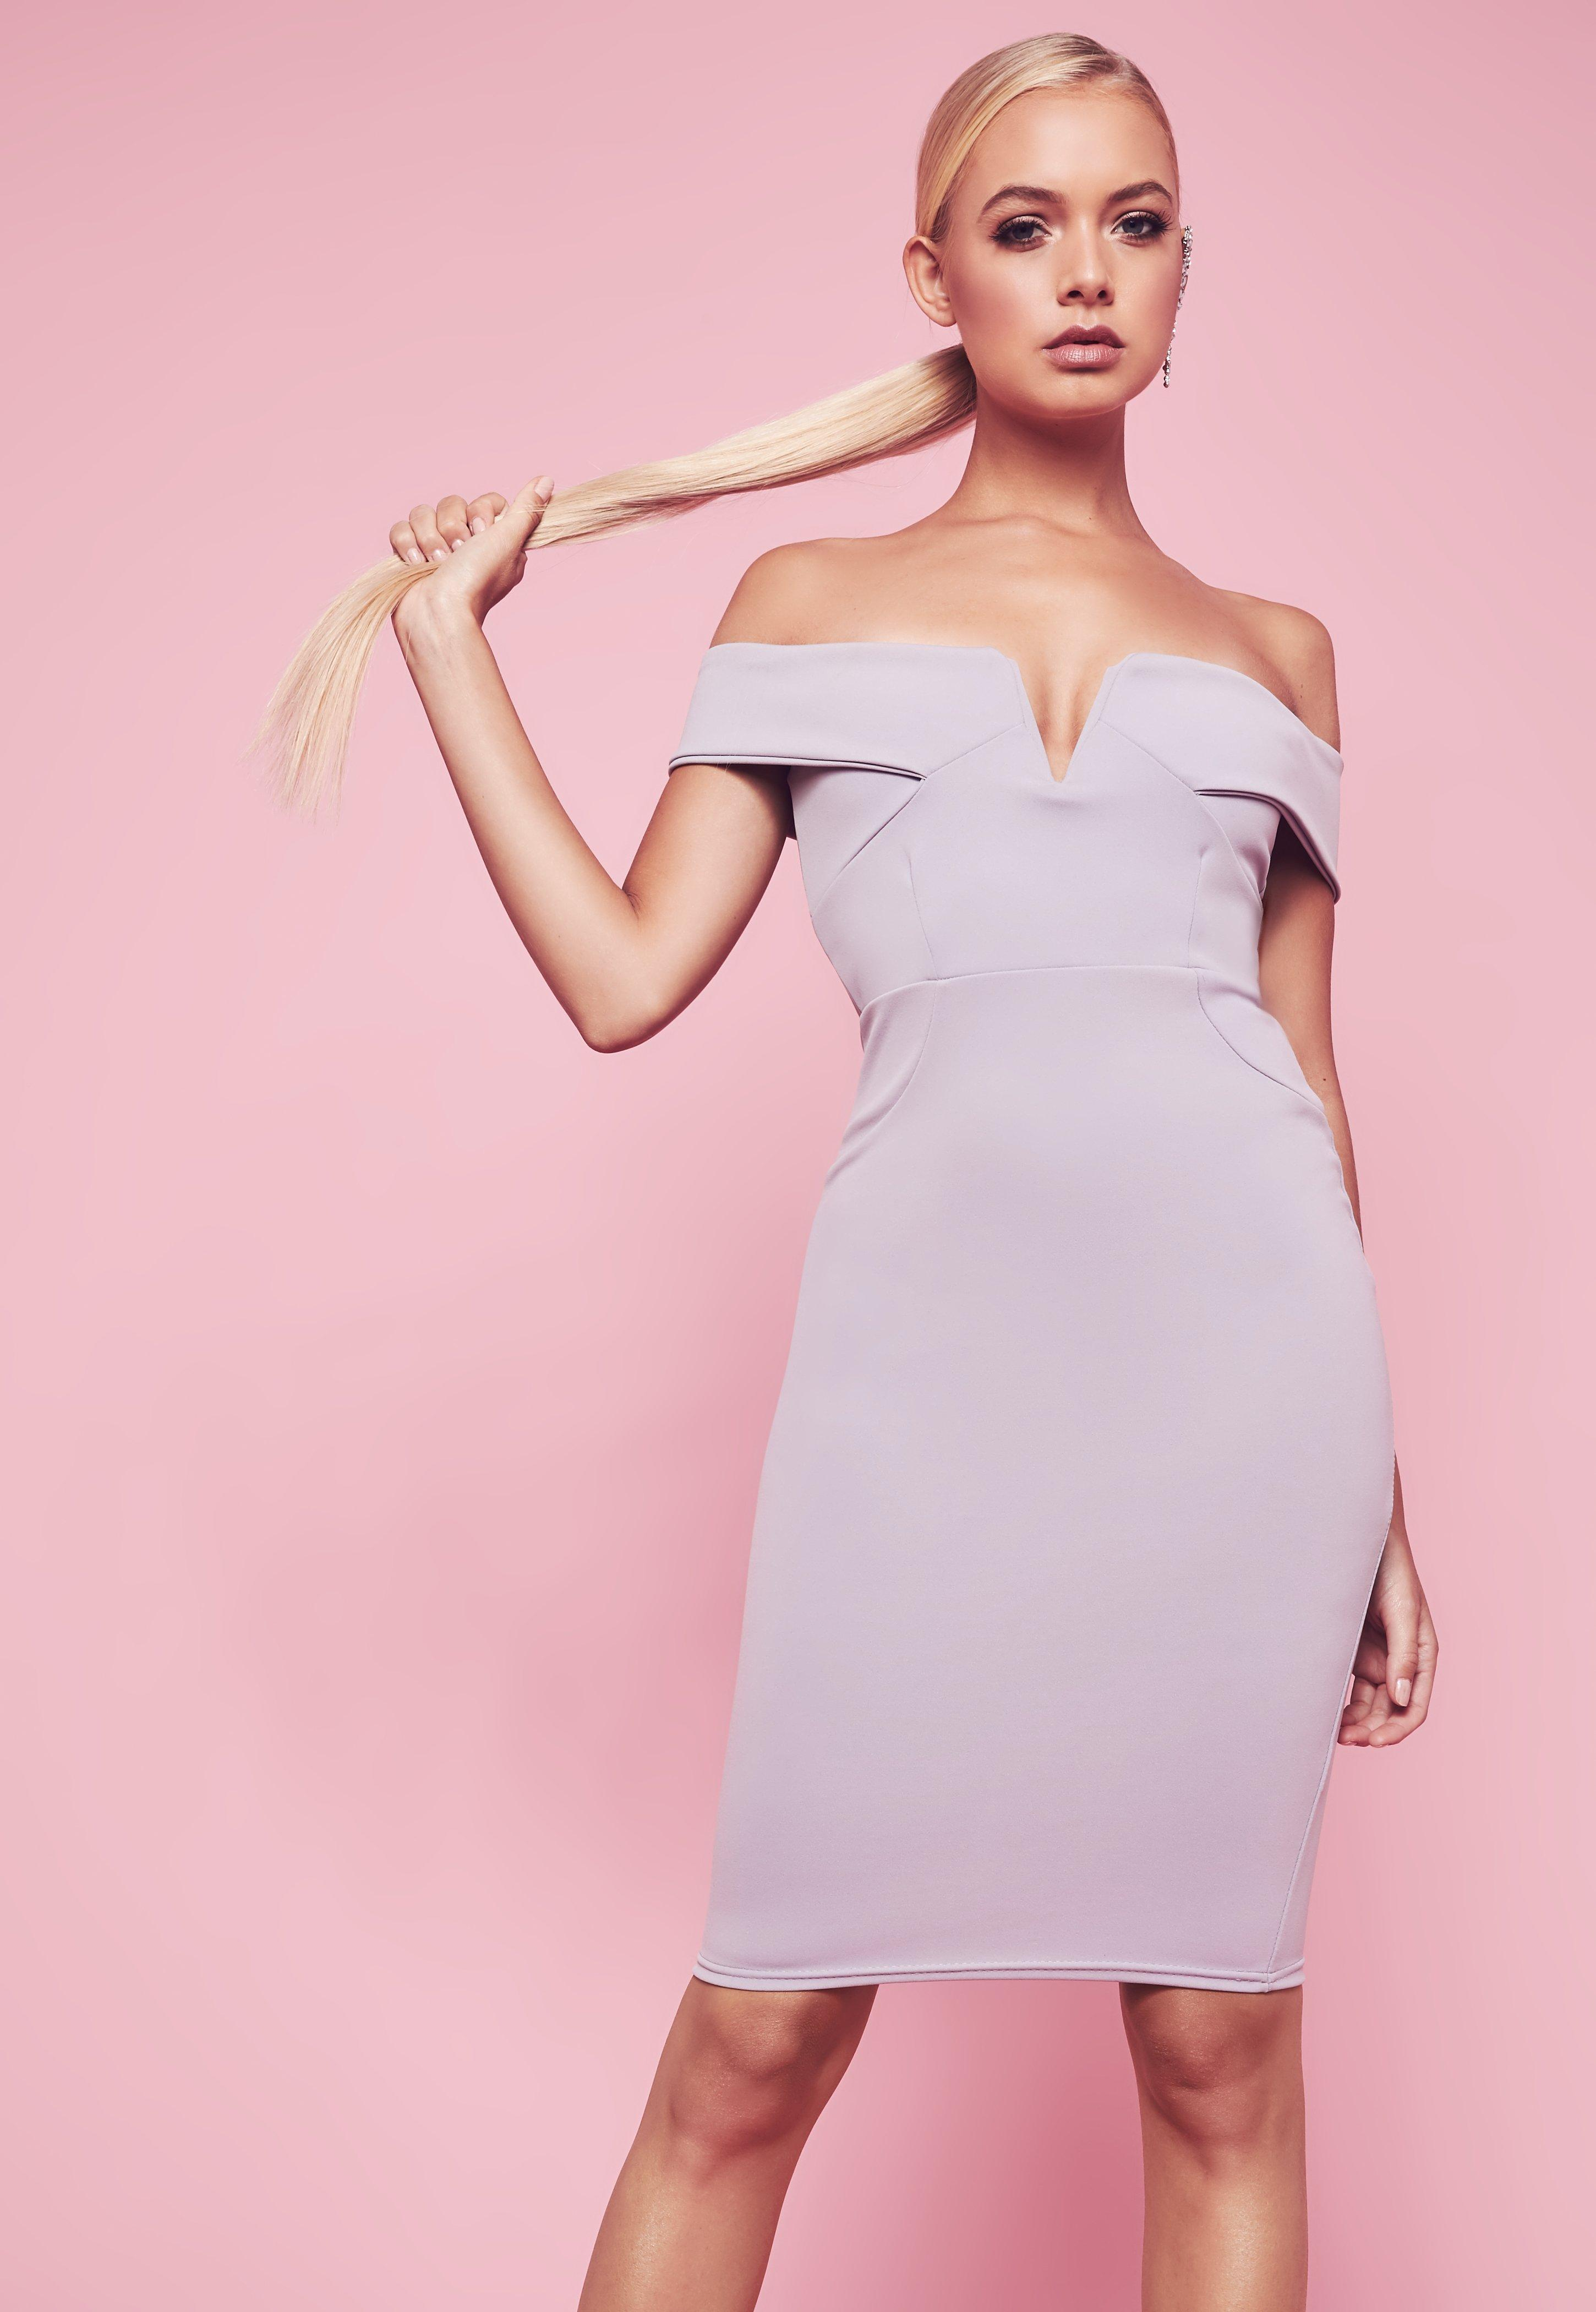 Missbrided | Vestidos de novia e invitadas de boda - Missguided